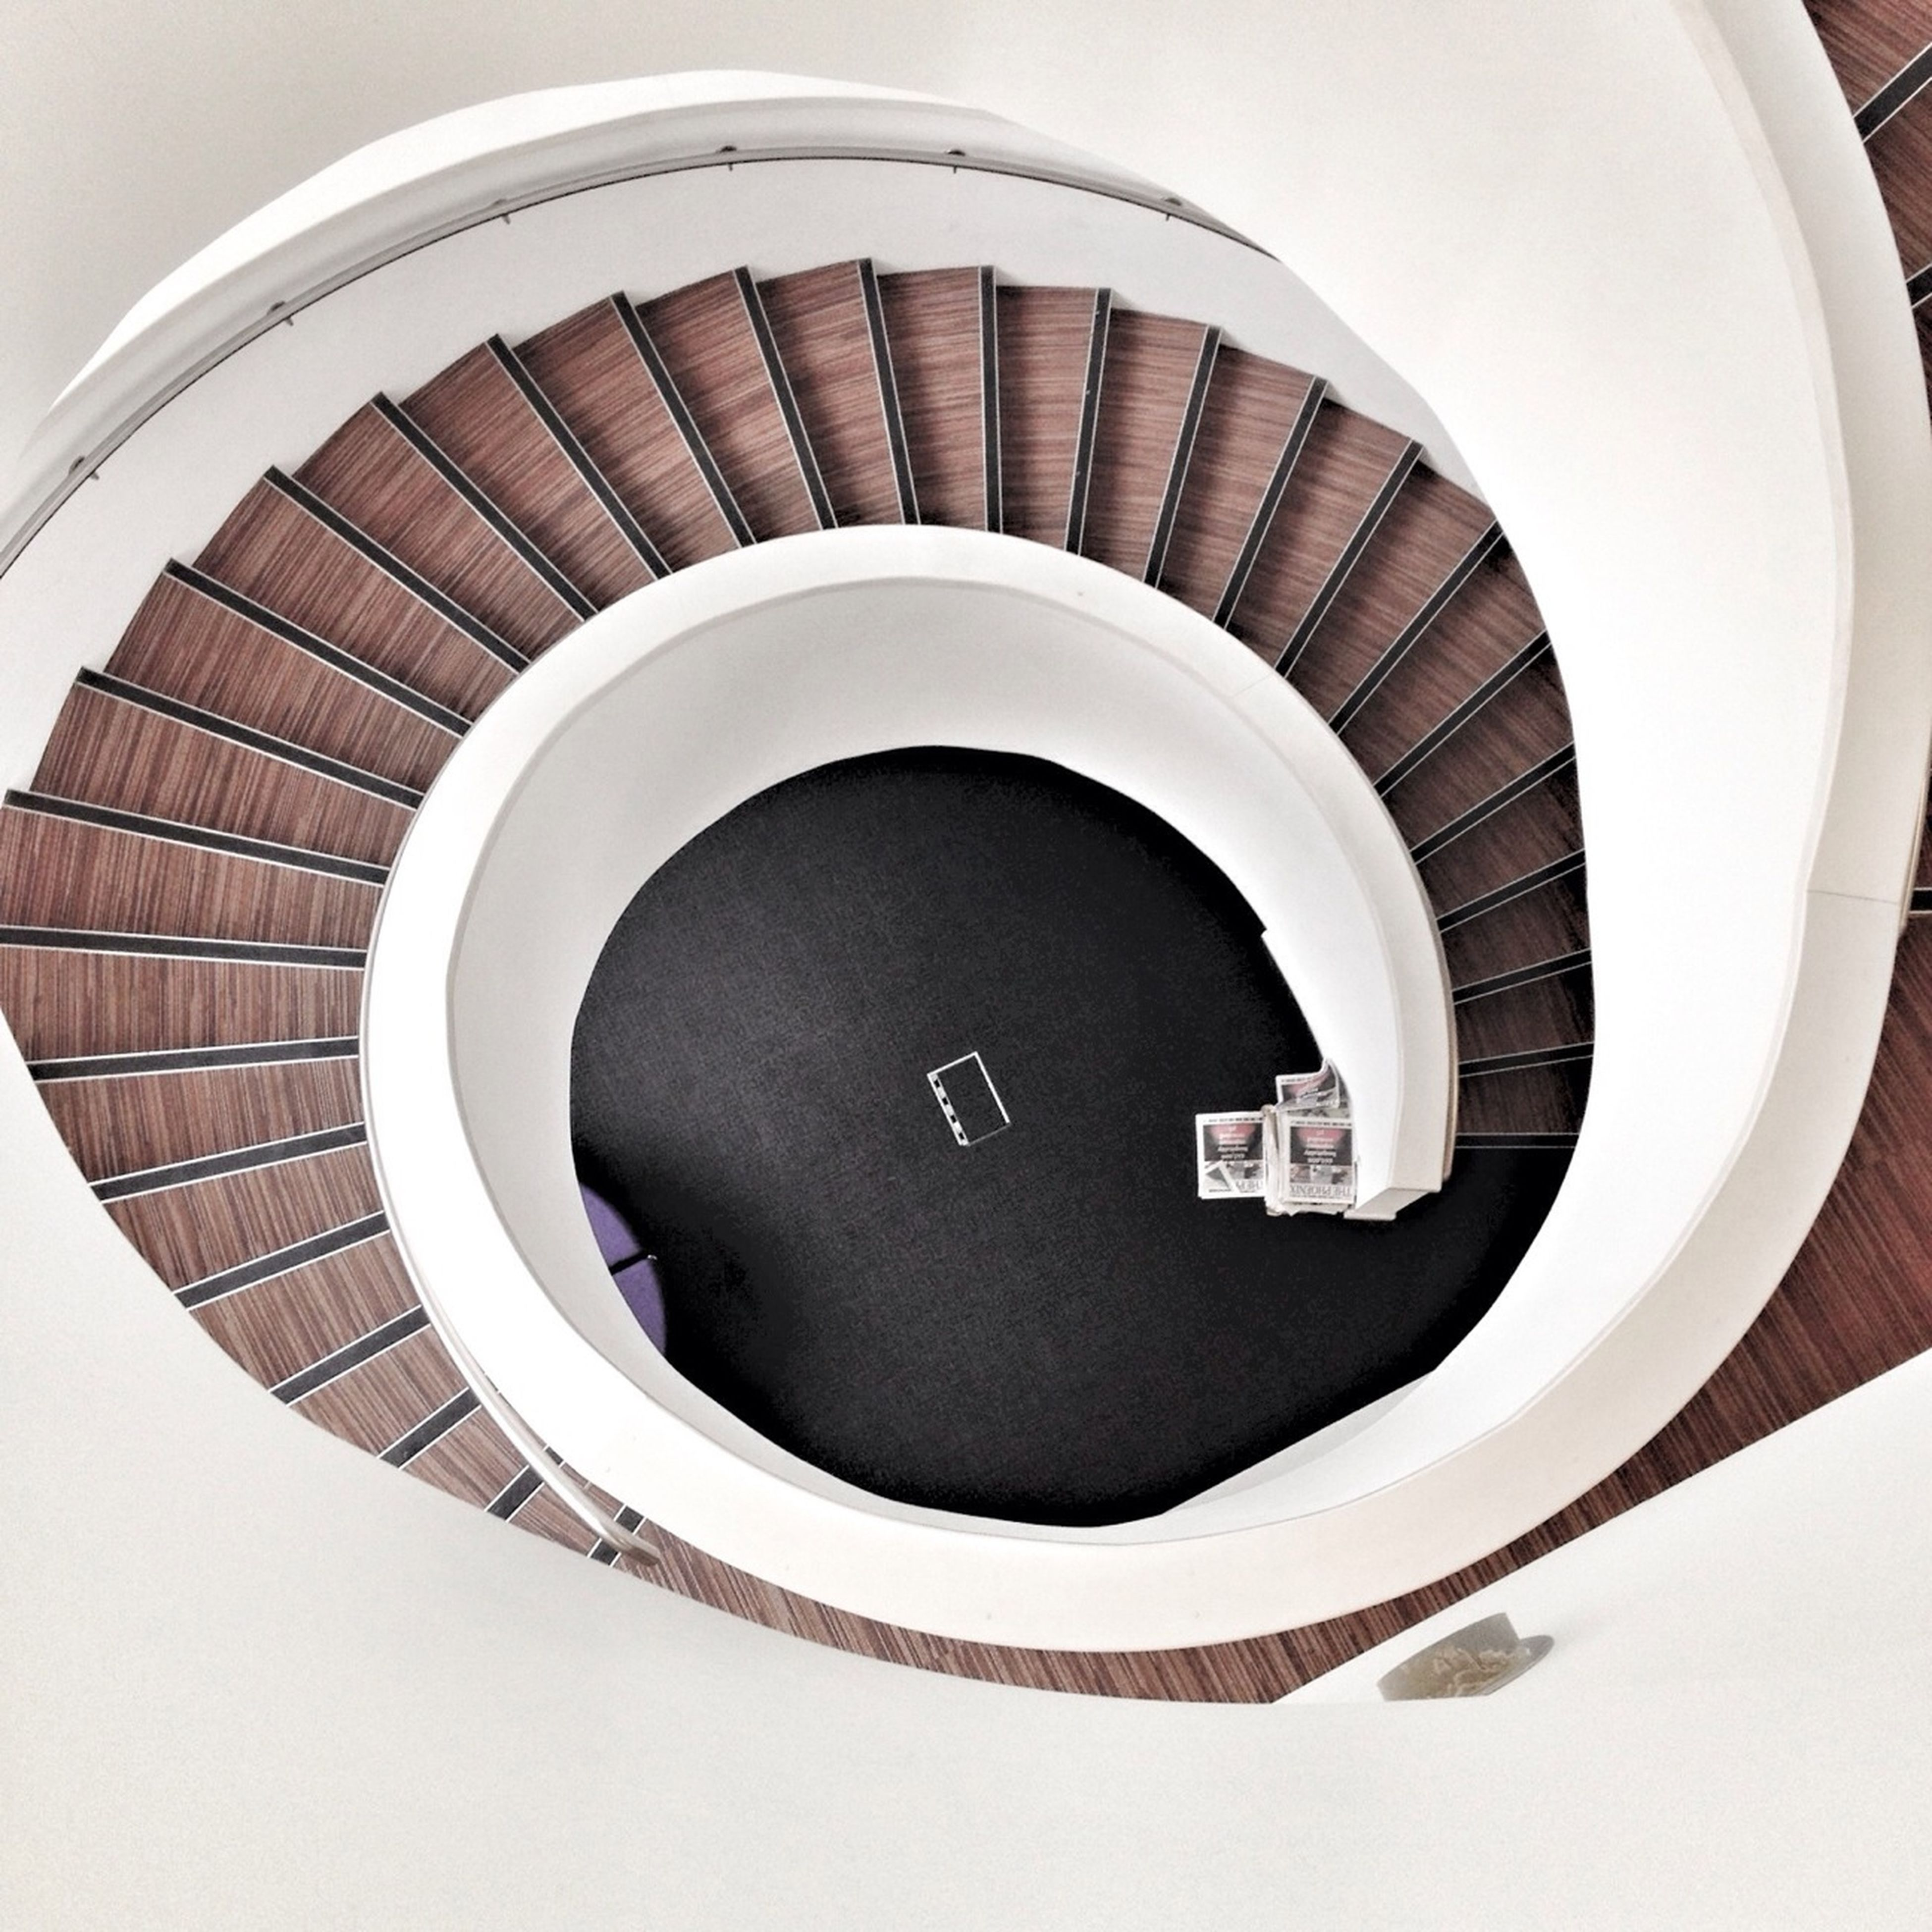 circle, indoors, architecture, built structure, spiral, spiral staircase, steps and staircases, staircase, steps, white color, high angle view, directly above, railing, geometric shape, no people, building exterior, pattern, modern, low angle view, building